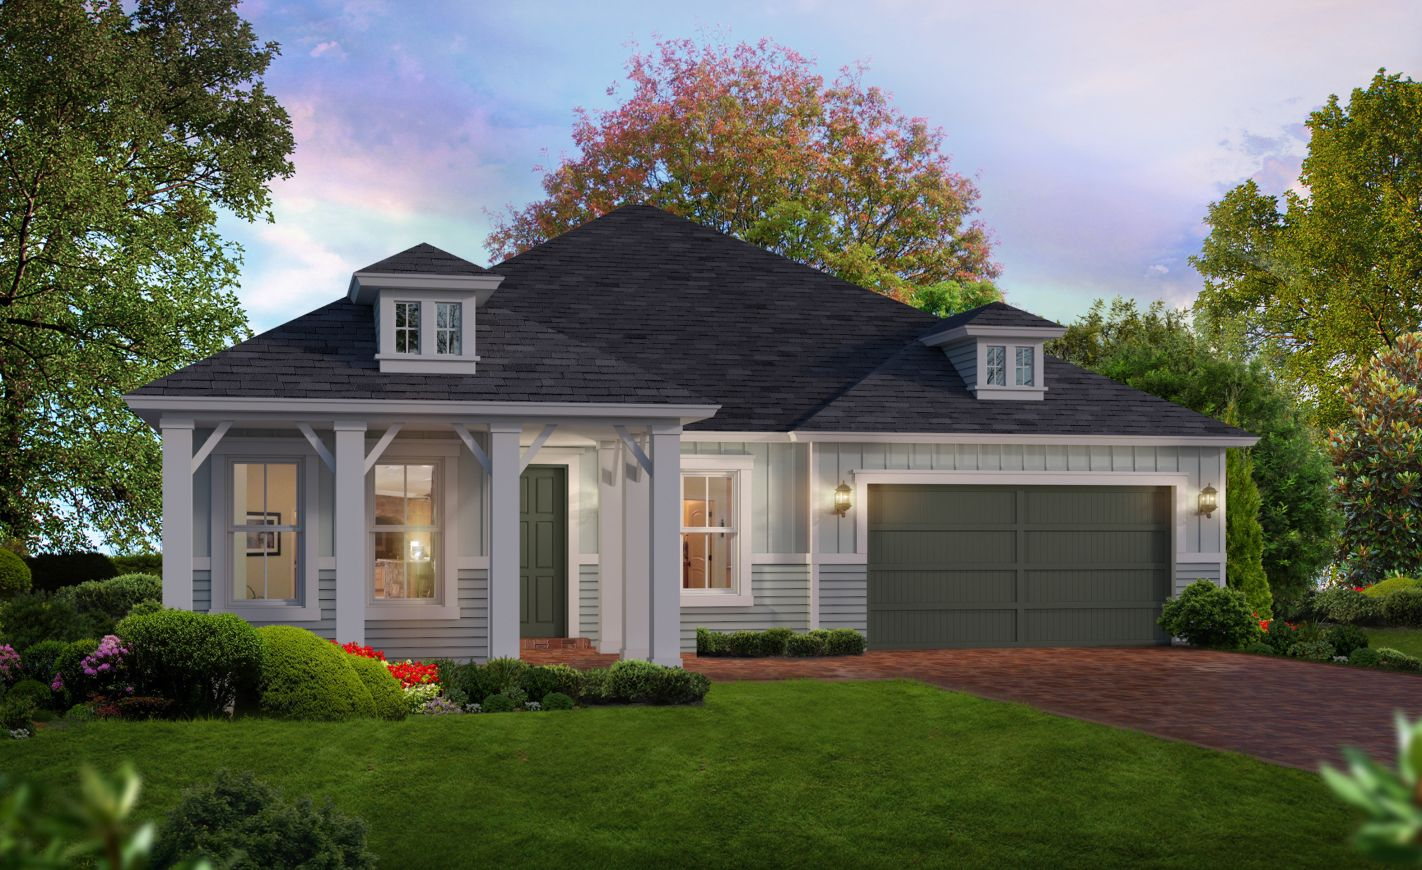 Nocatee Homes for Sale - The Juliette at Nocatee